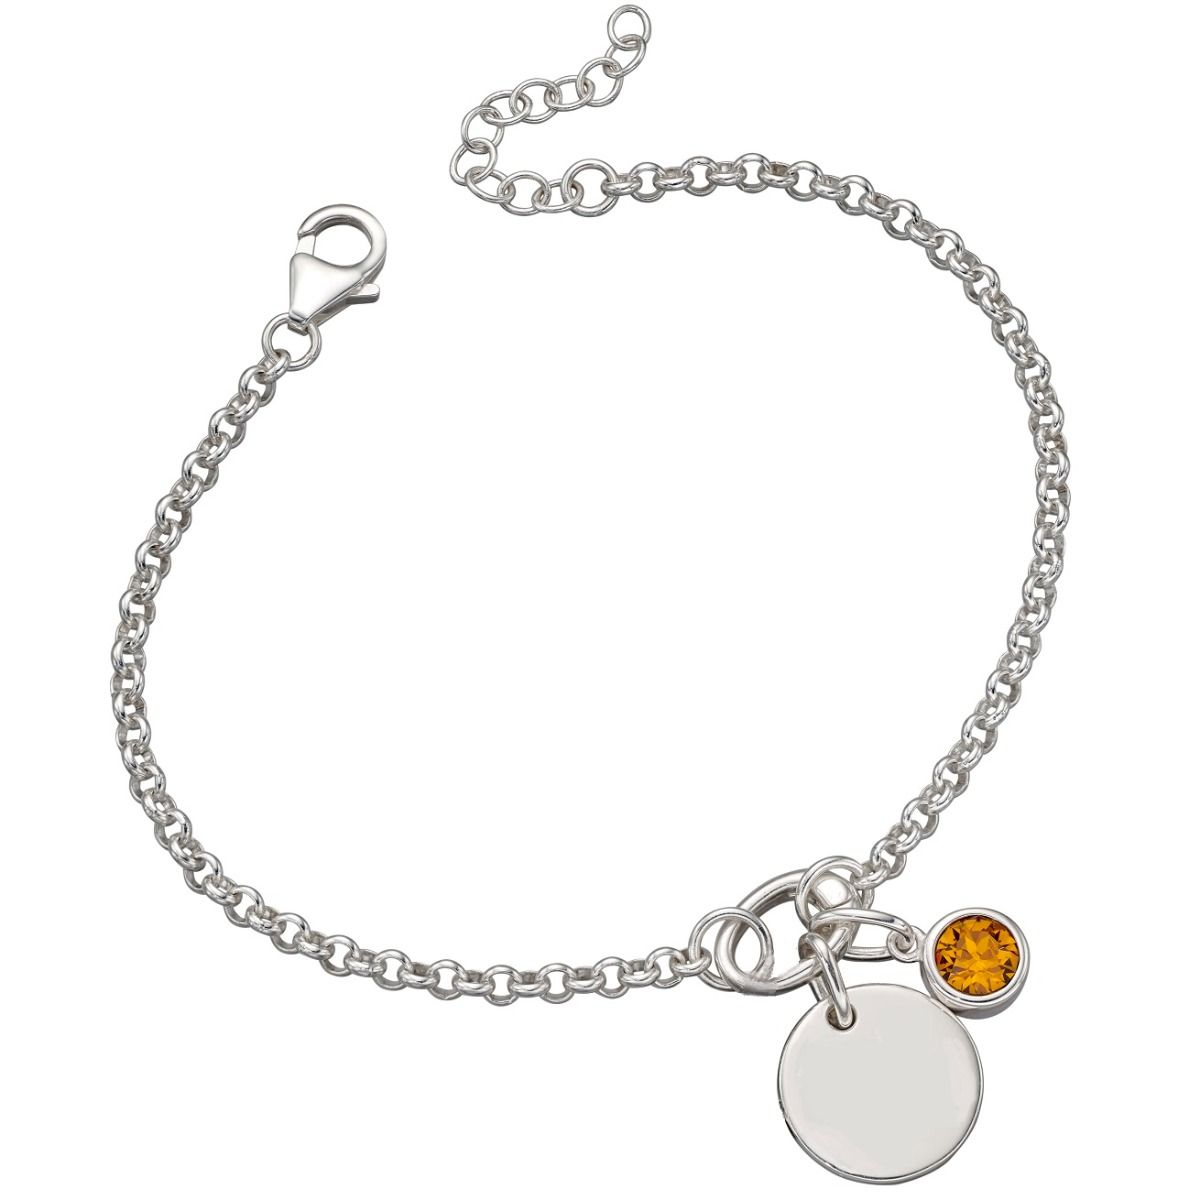 Sterling Silver Charm Bracelet Birthstone And Disc